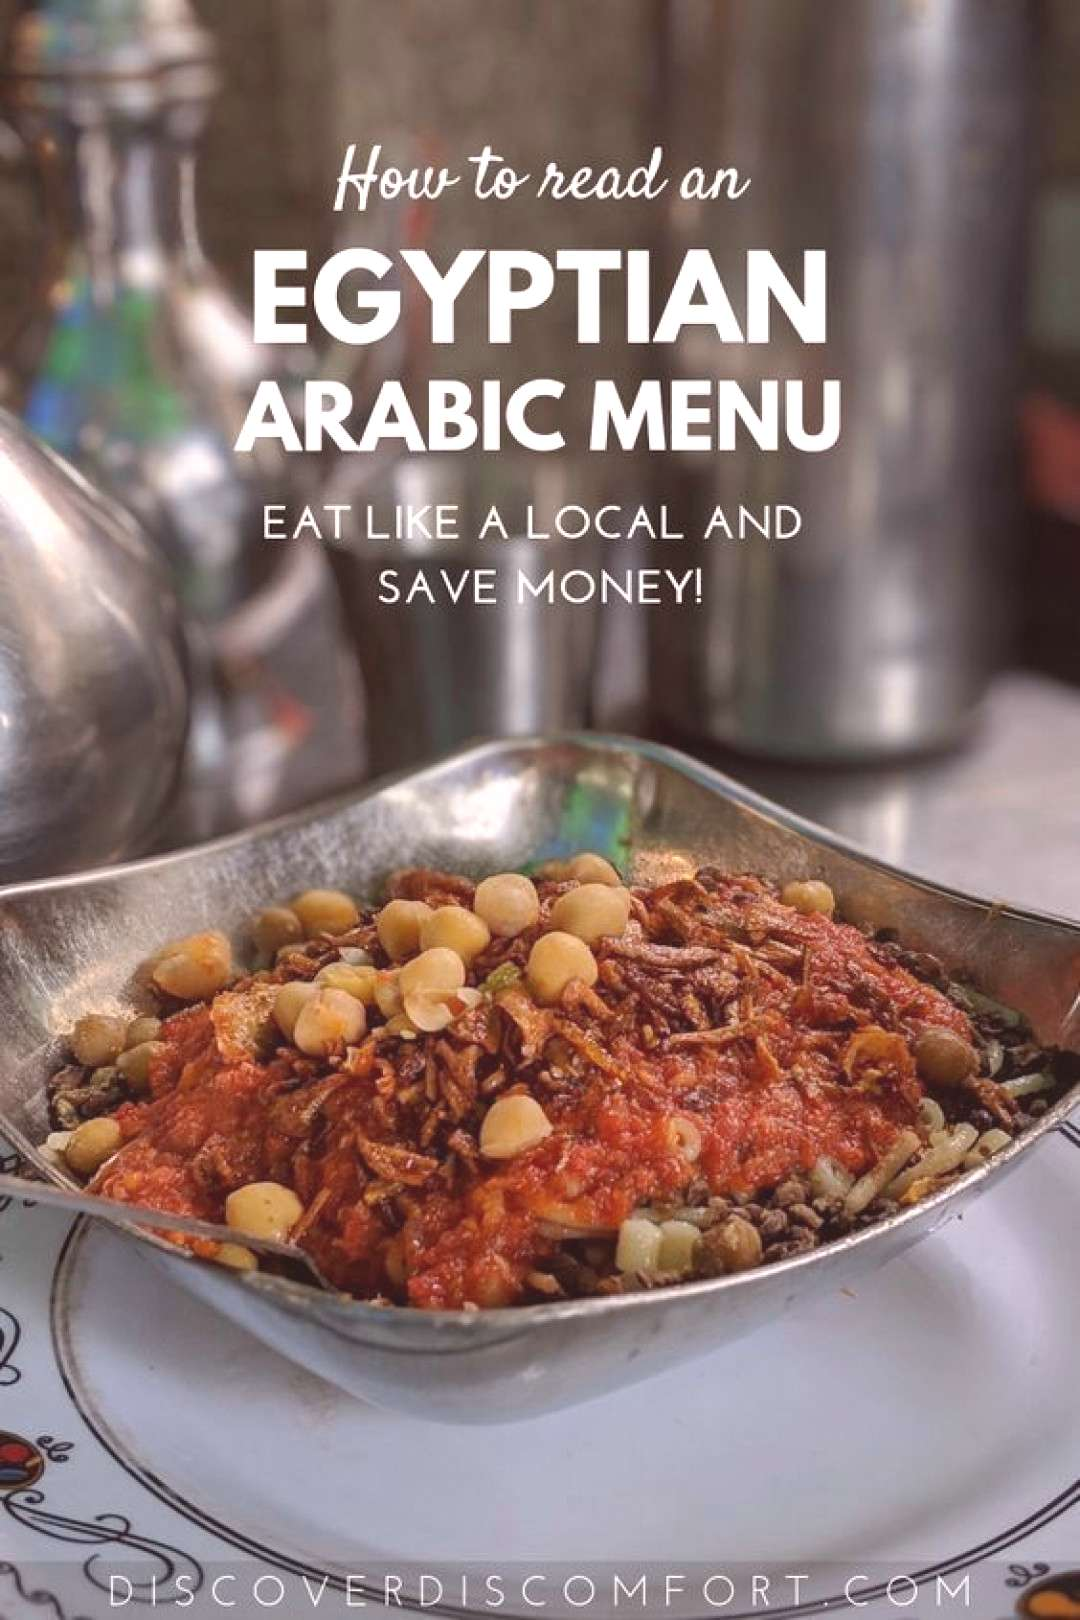 Reading a Local Egyptian Arabic Food Menu 80-20 style | Discover Discomfort It's really fun picki